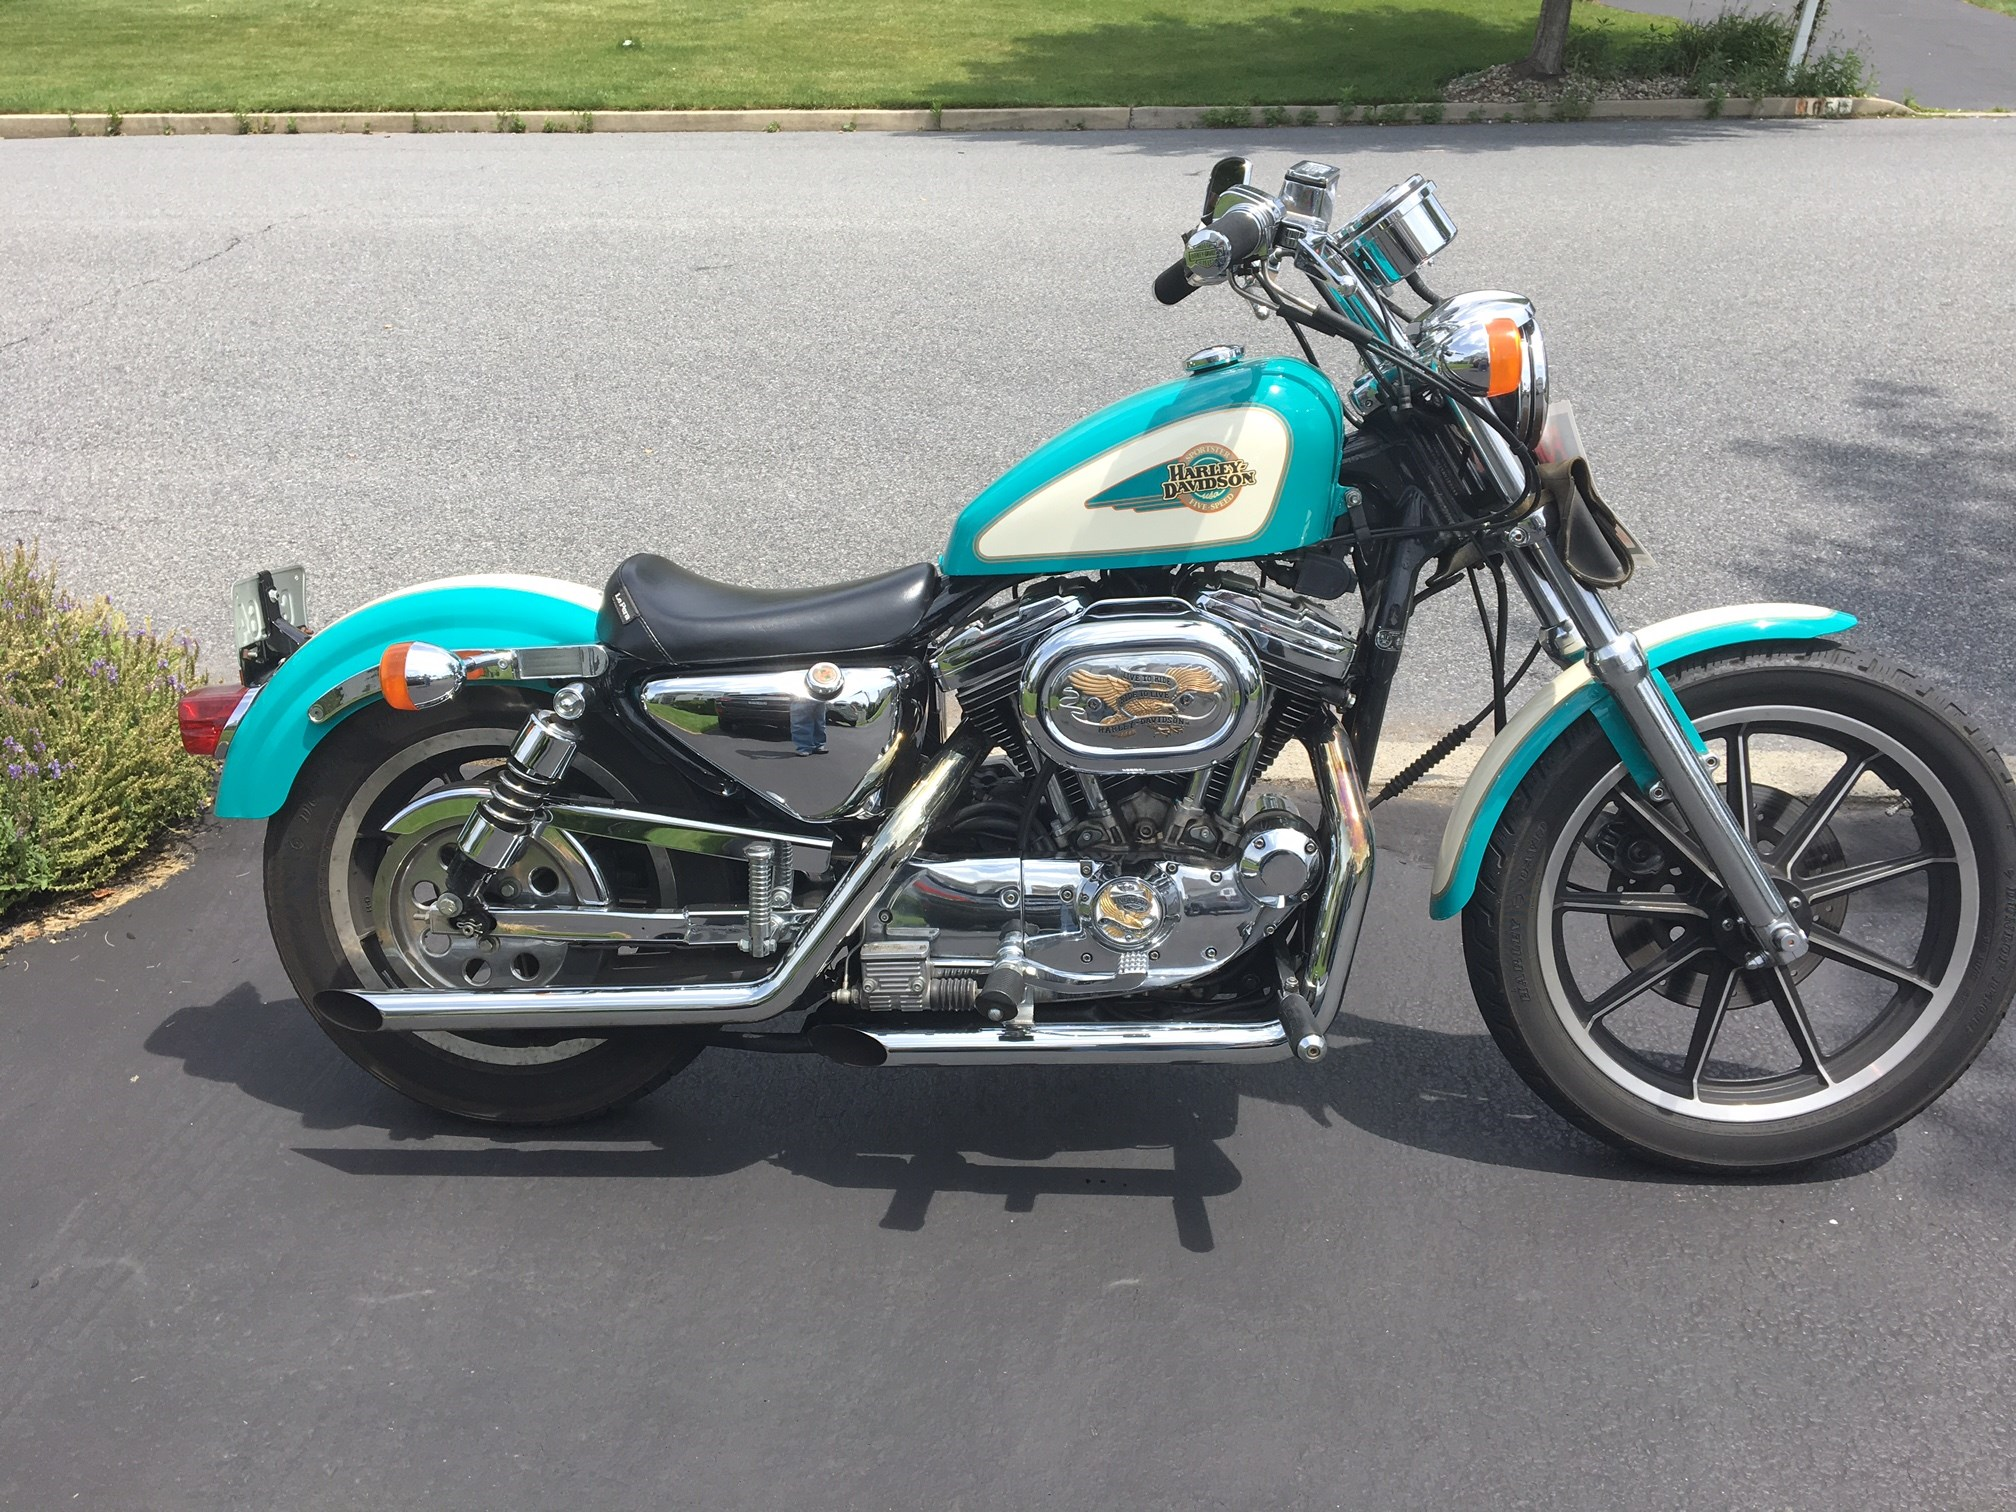 Used Cvo Street Glide For Sale Texas >> All New & Used Harley-Davidson® Sportster 1200 For Sale (1,895 Bikes, Page 1) | ChopperExchange